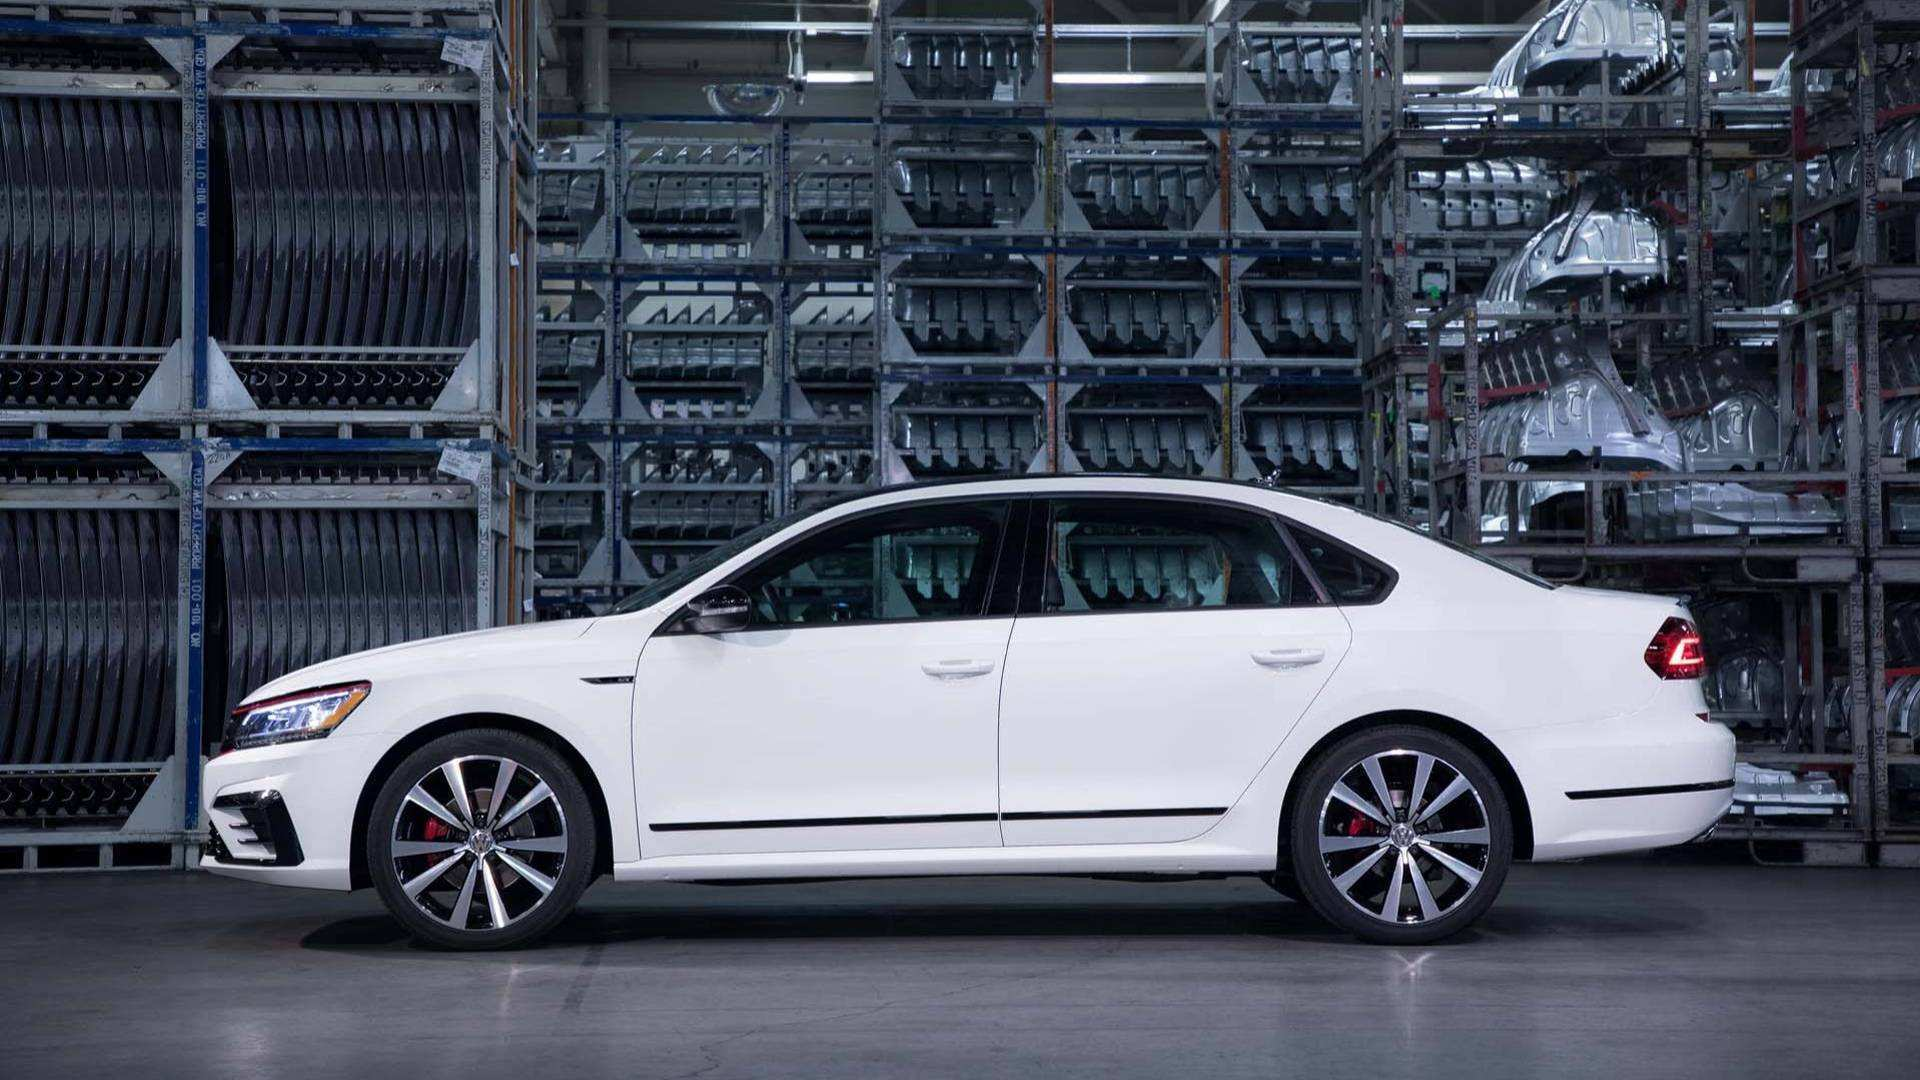 32 Best 2019 Vw Passat Review And Release Date